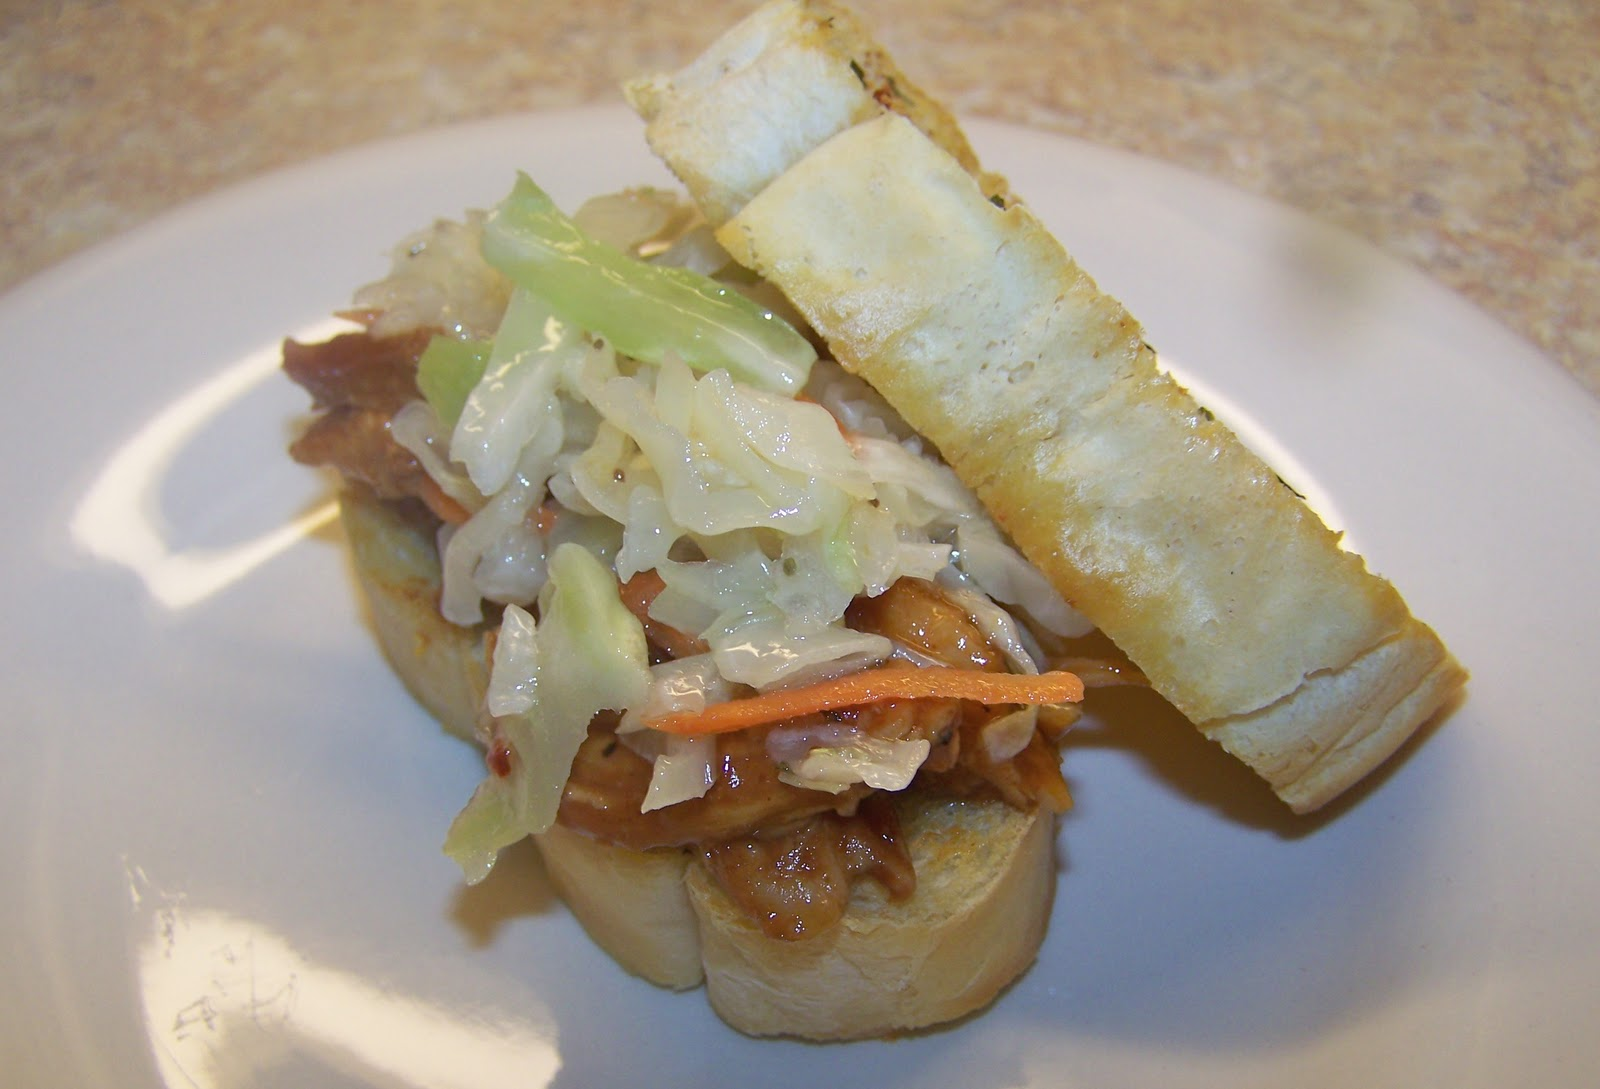 ... Treat: Shredded BBQ Chicken and Southern Slaw on Buttery Garlic Toast